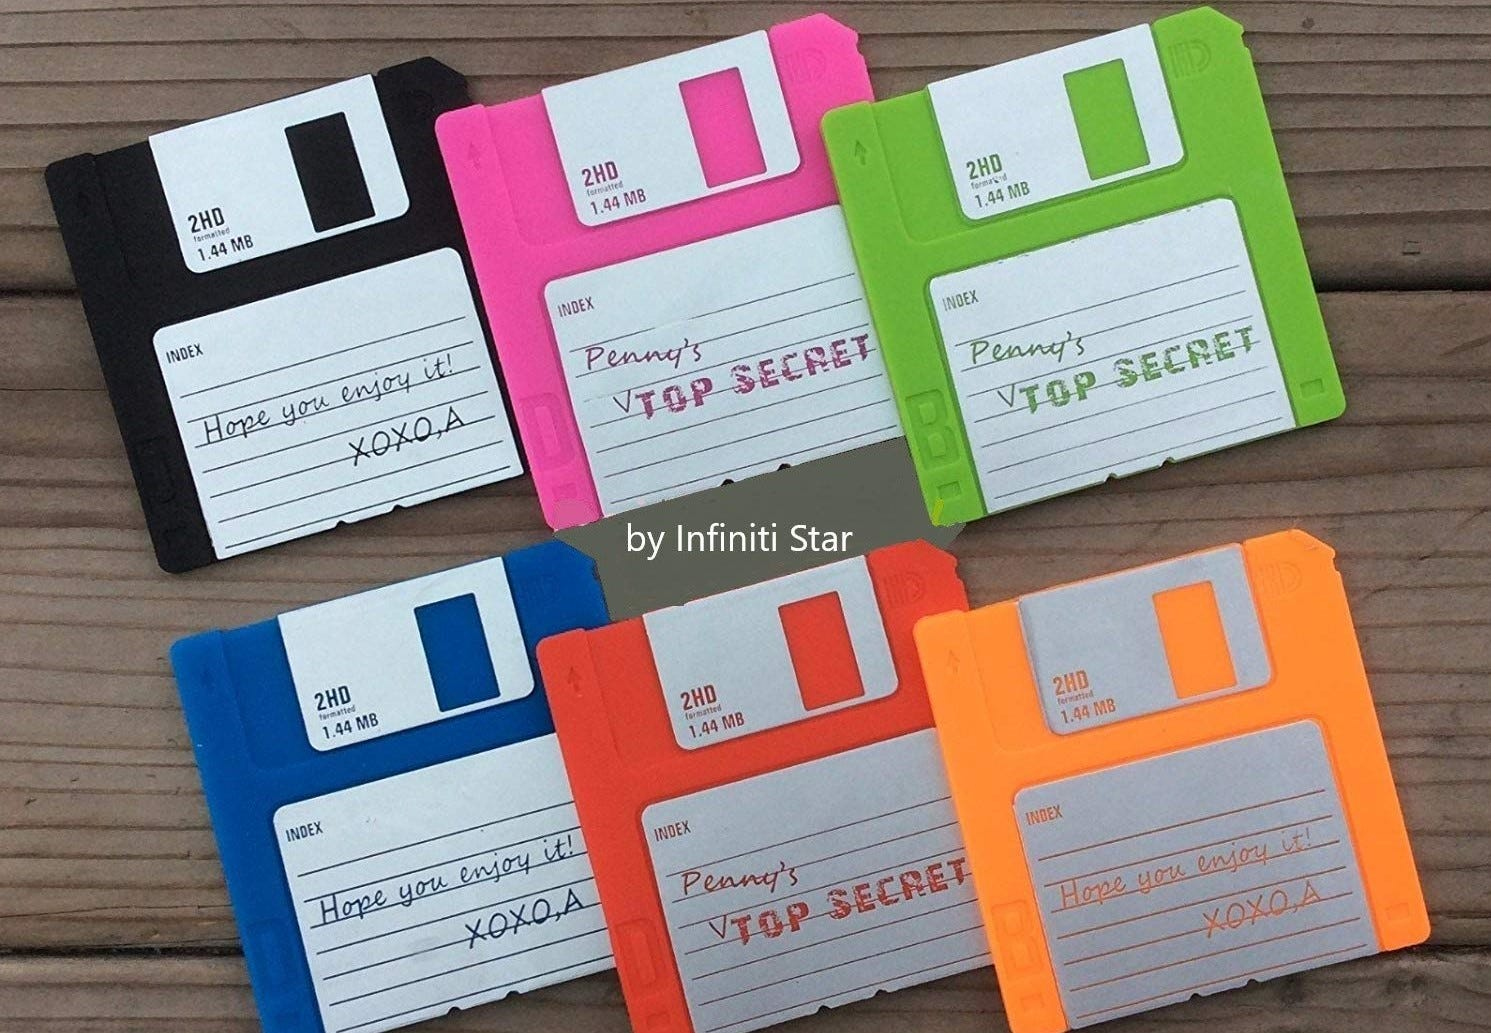 Six floppy disk coasters in various colors.